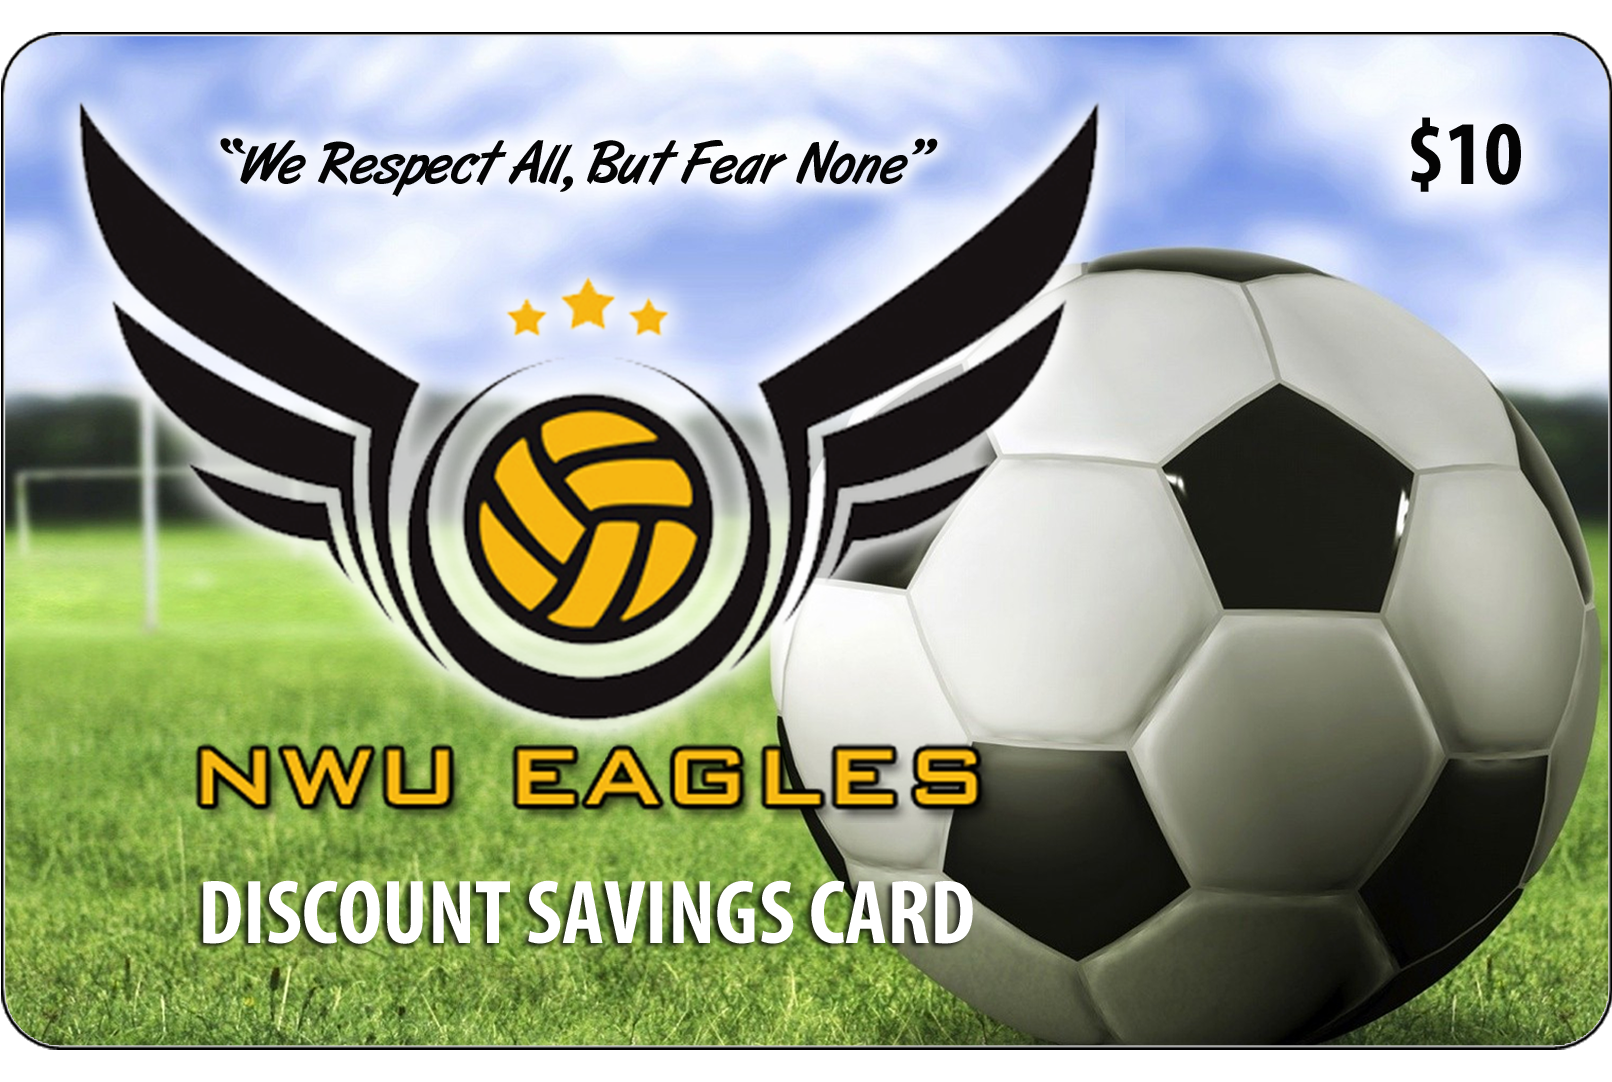 soccer-discount-card-fundraiser | big fundraising ideas